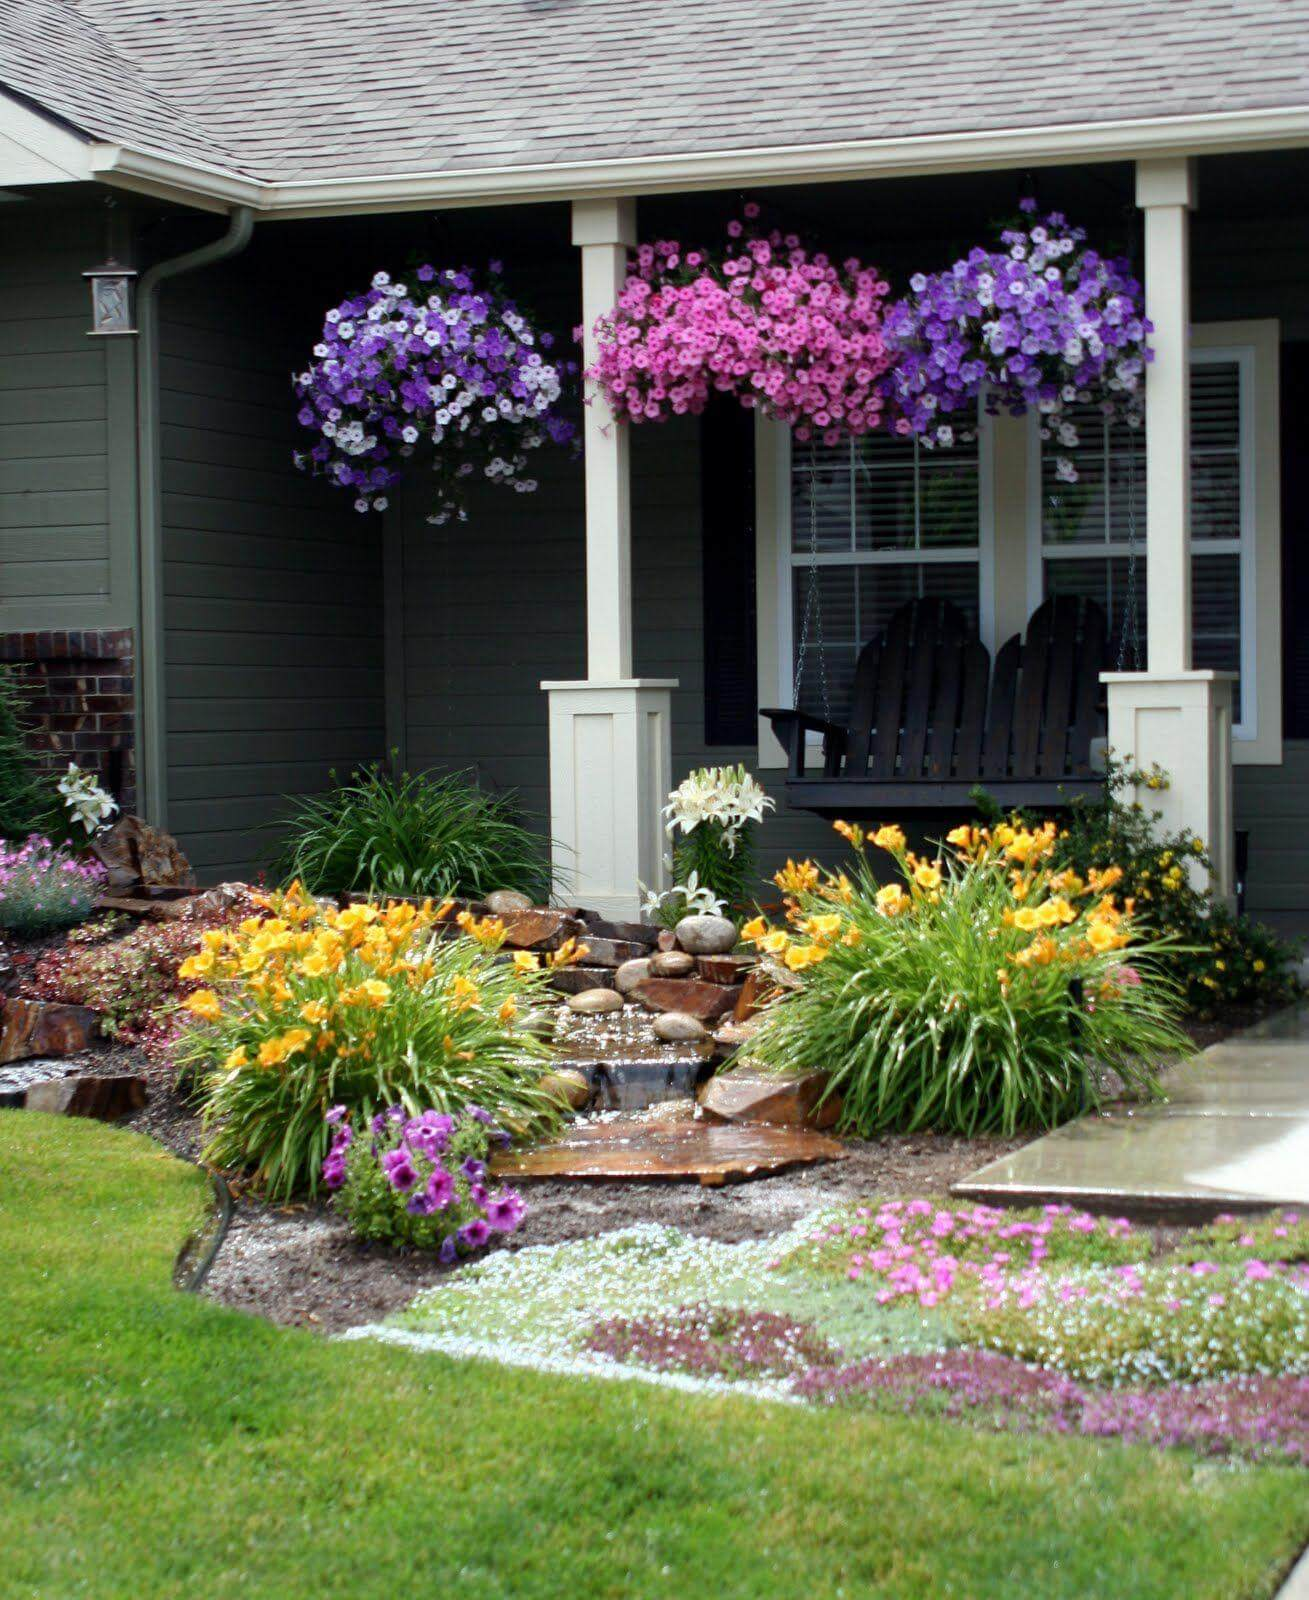 Front Yard Landscaping Design: 50 Best Front Yard Landscaping Ideas And Garden Designs